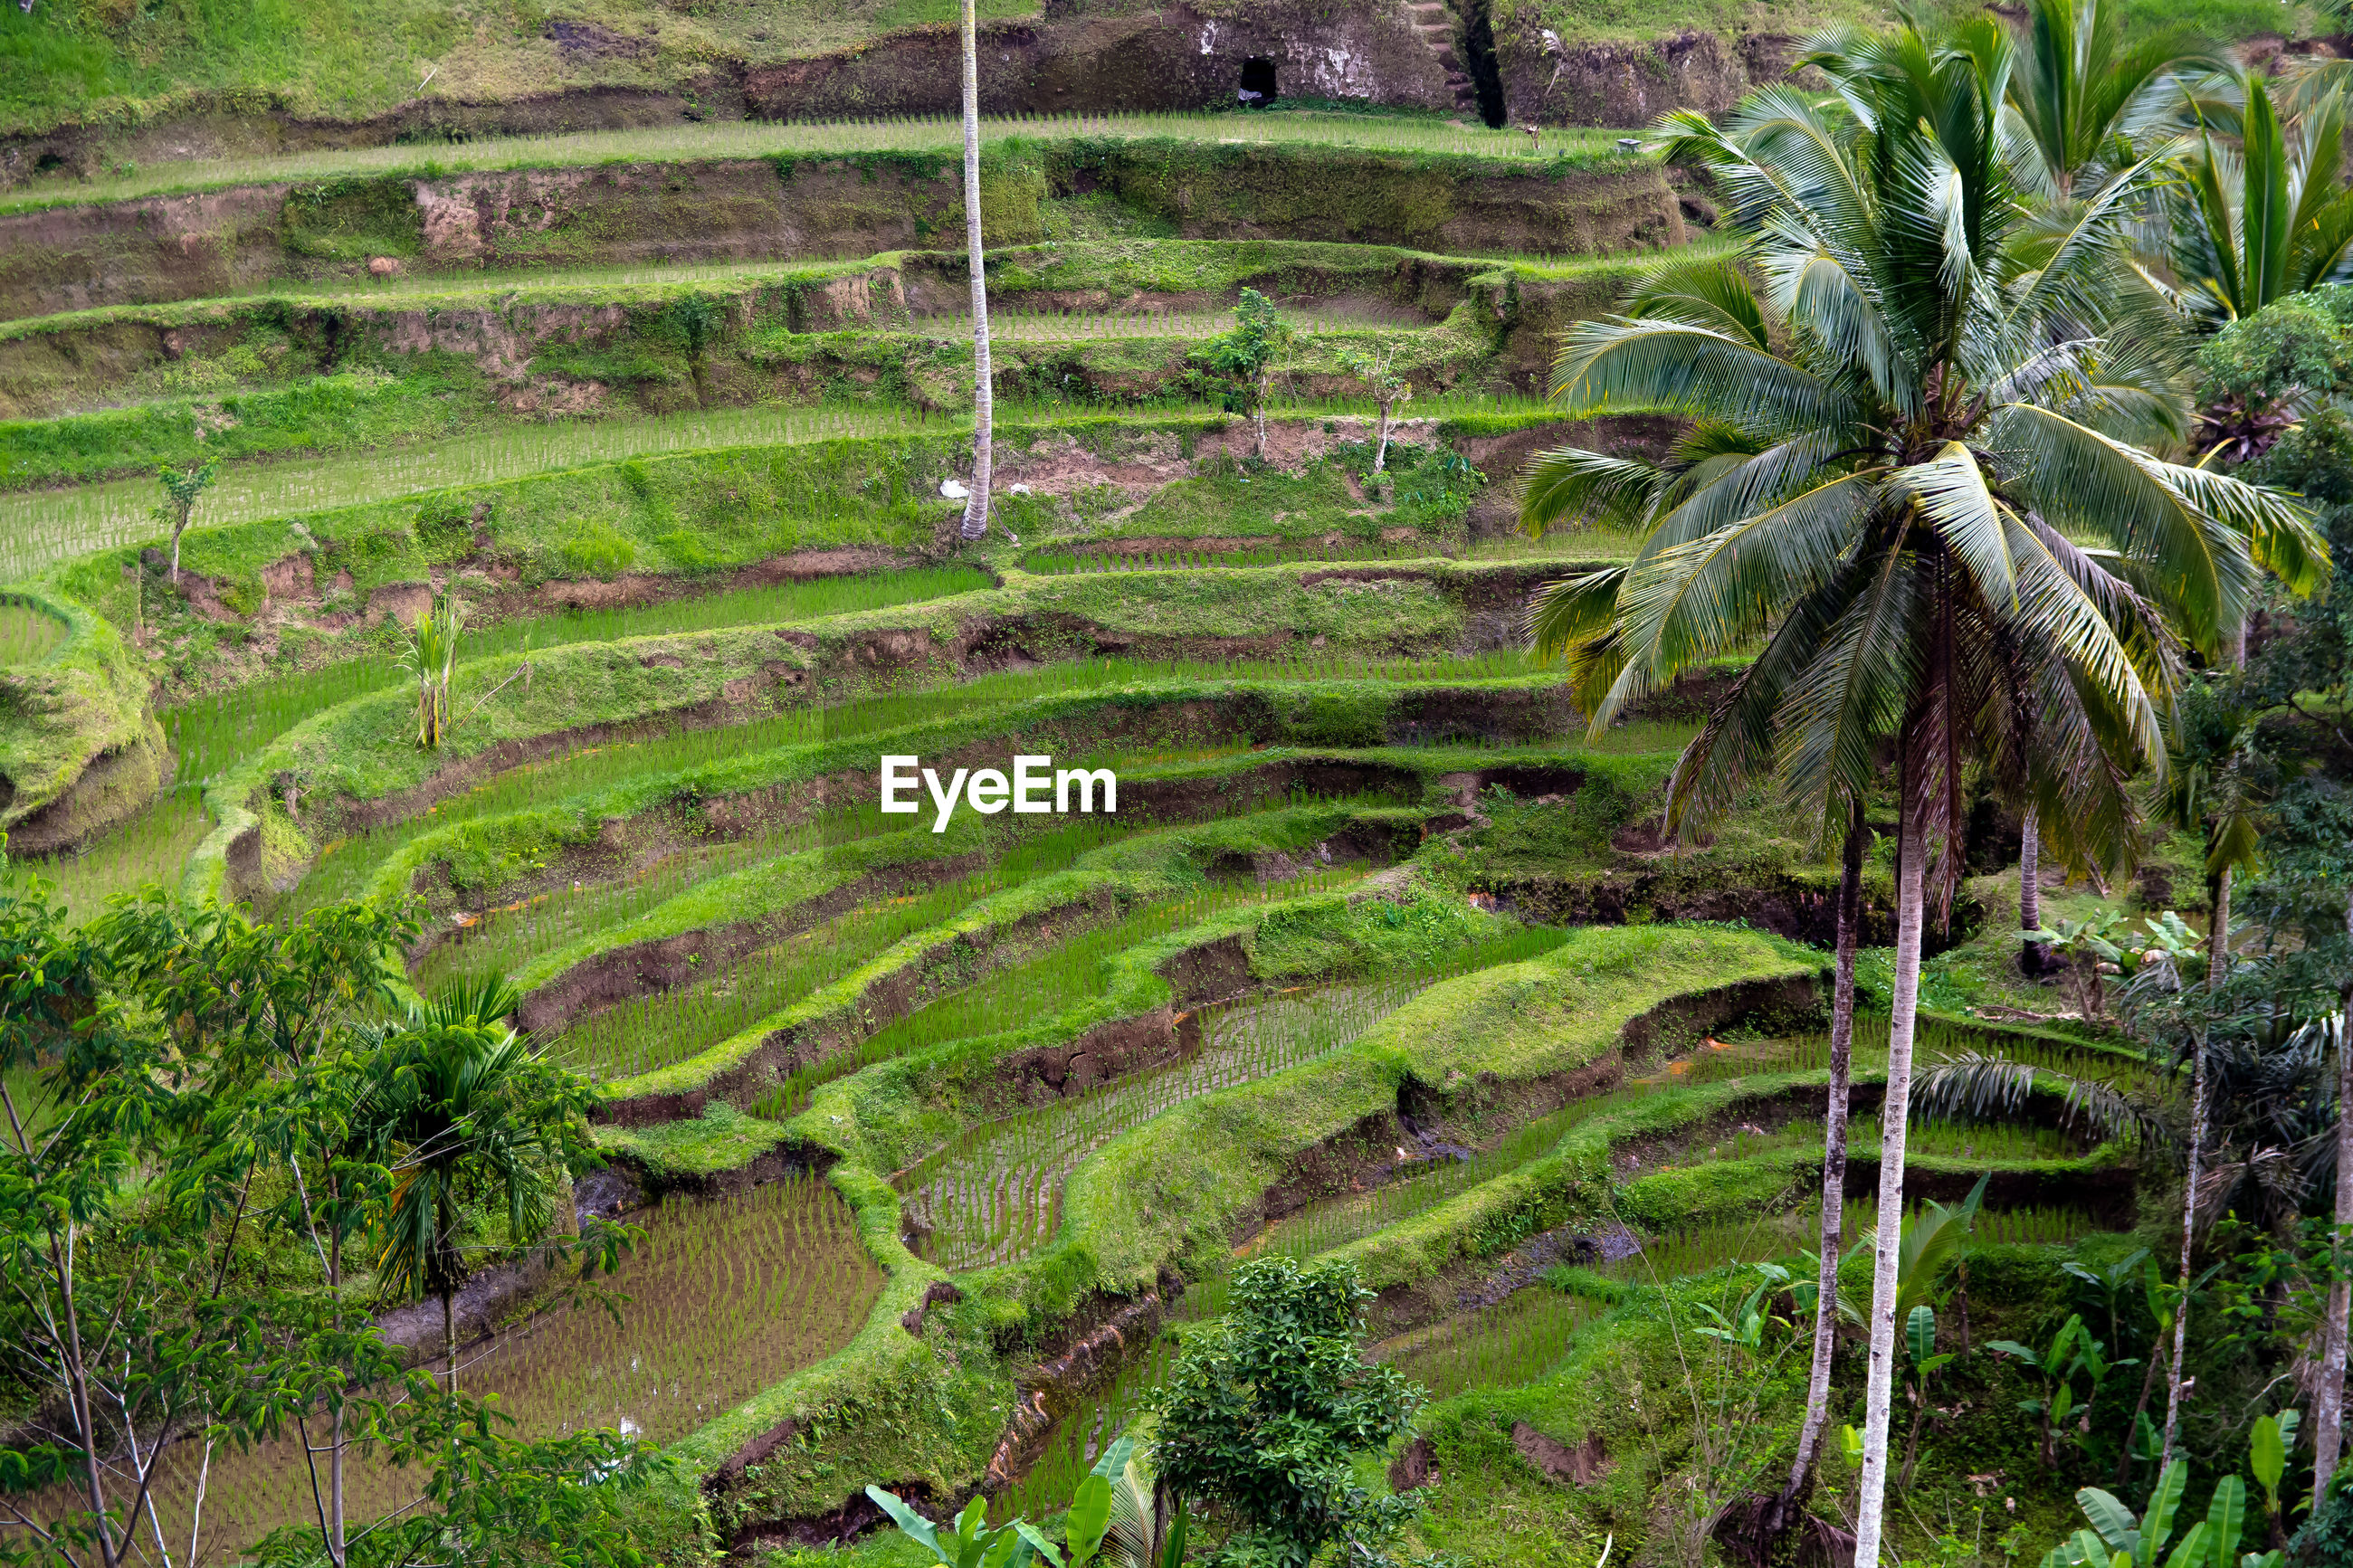 Palm trees growing by rice terrace